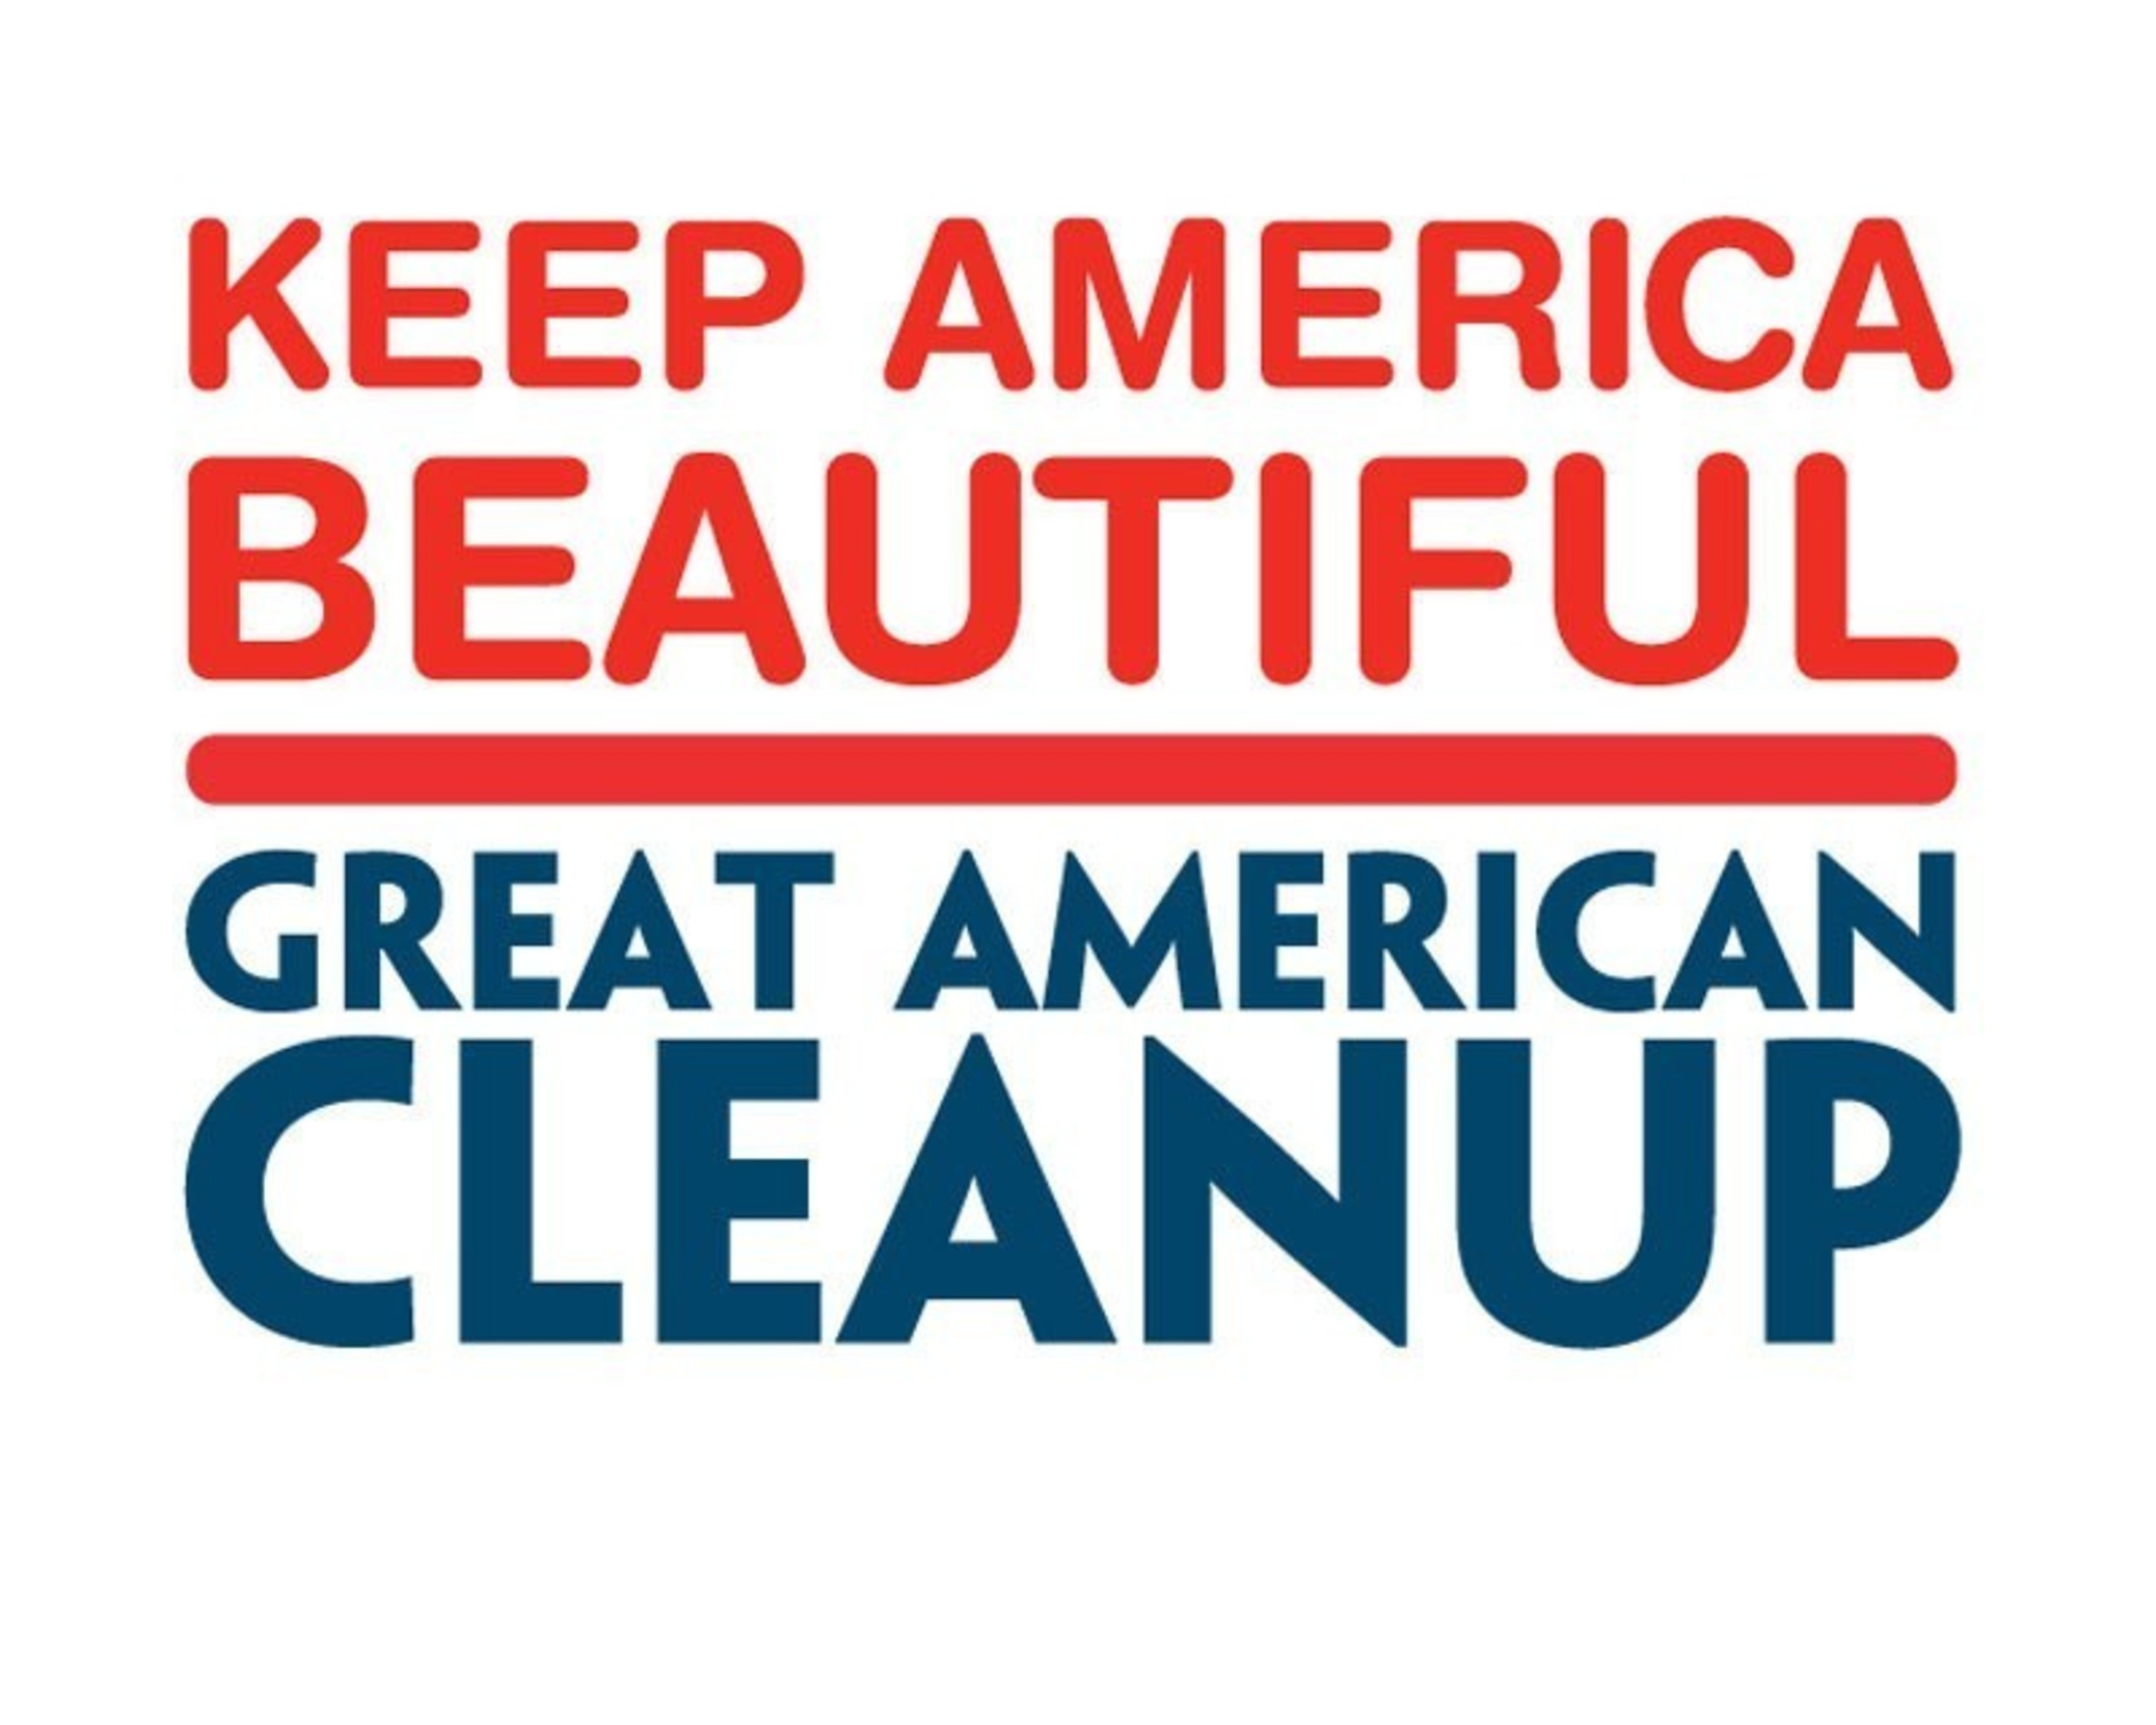 Keep America Beautiful's Great American Cleanup.